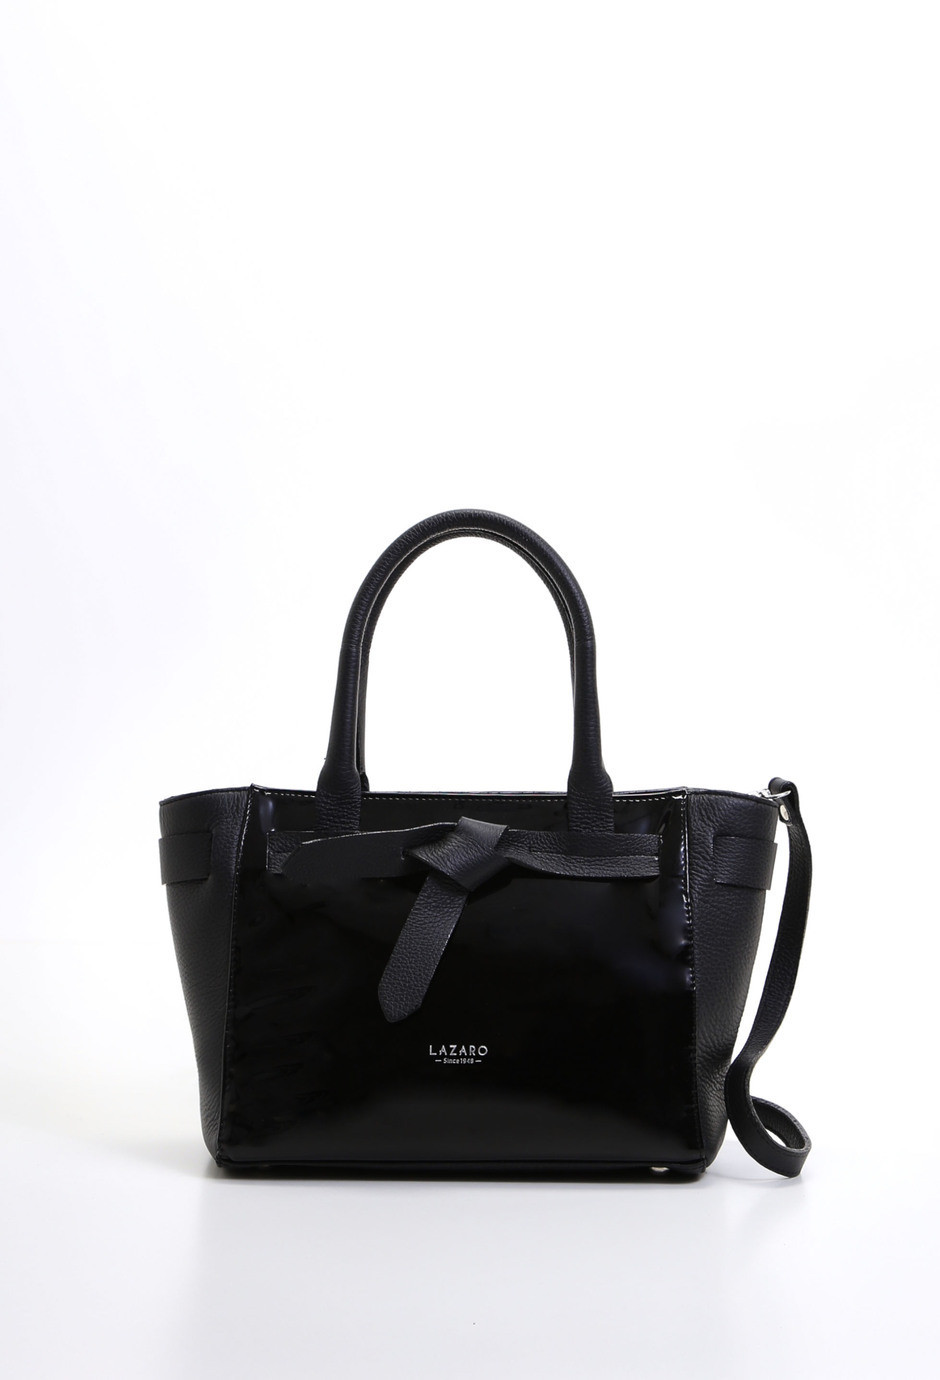 Lazaro Mini Bag Chai negro